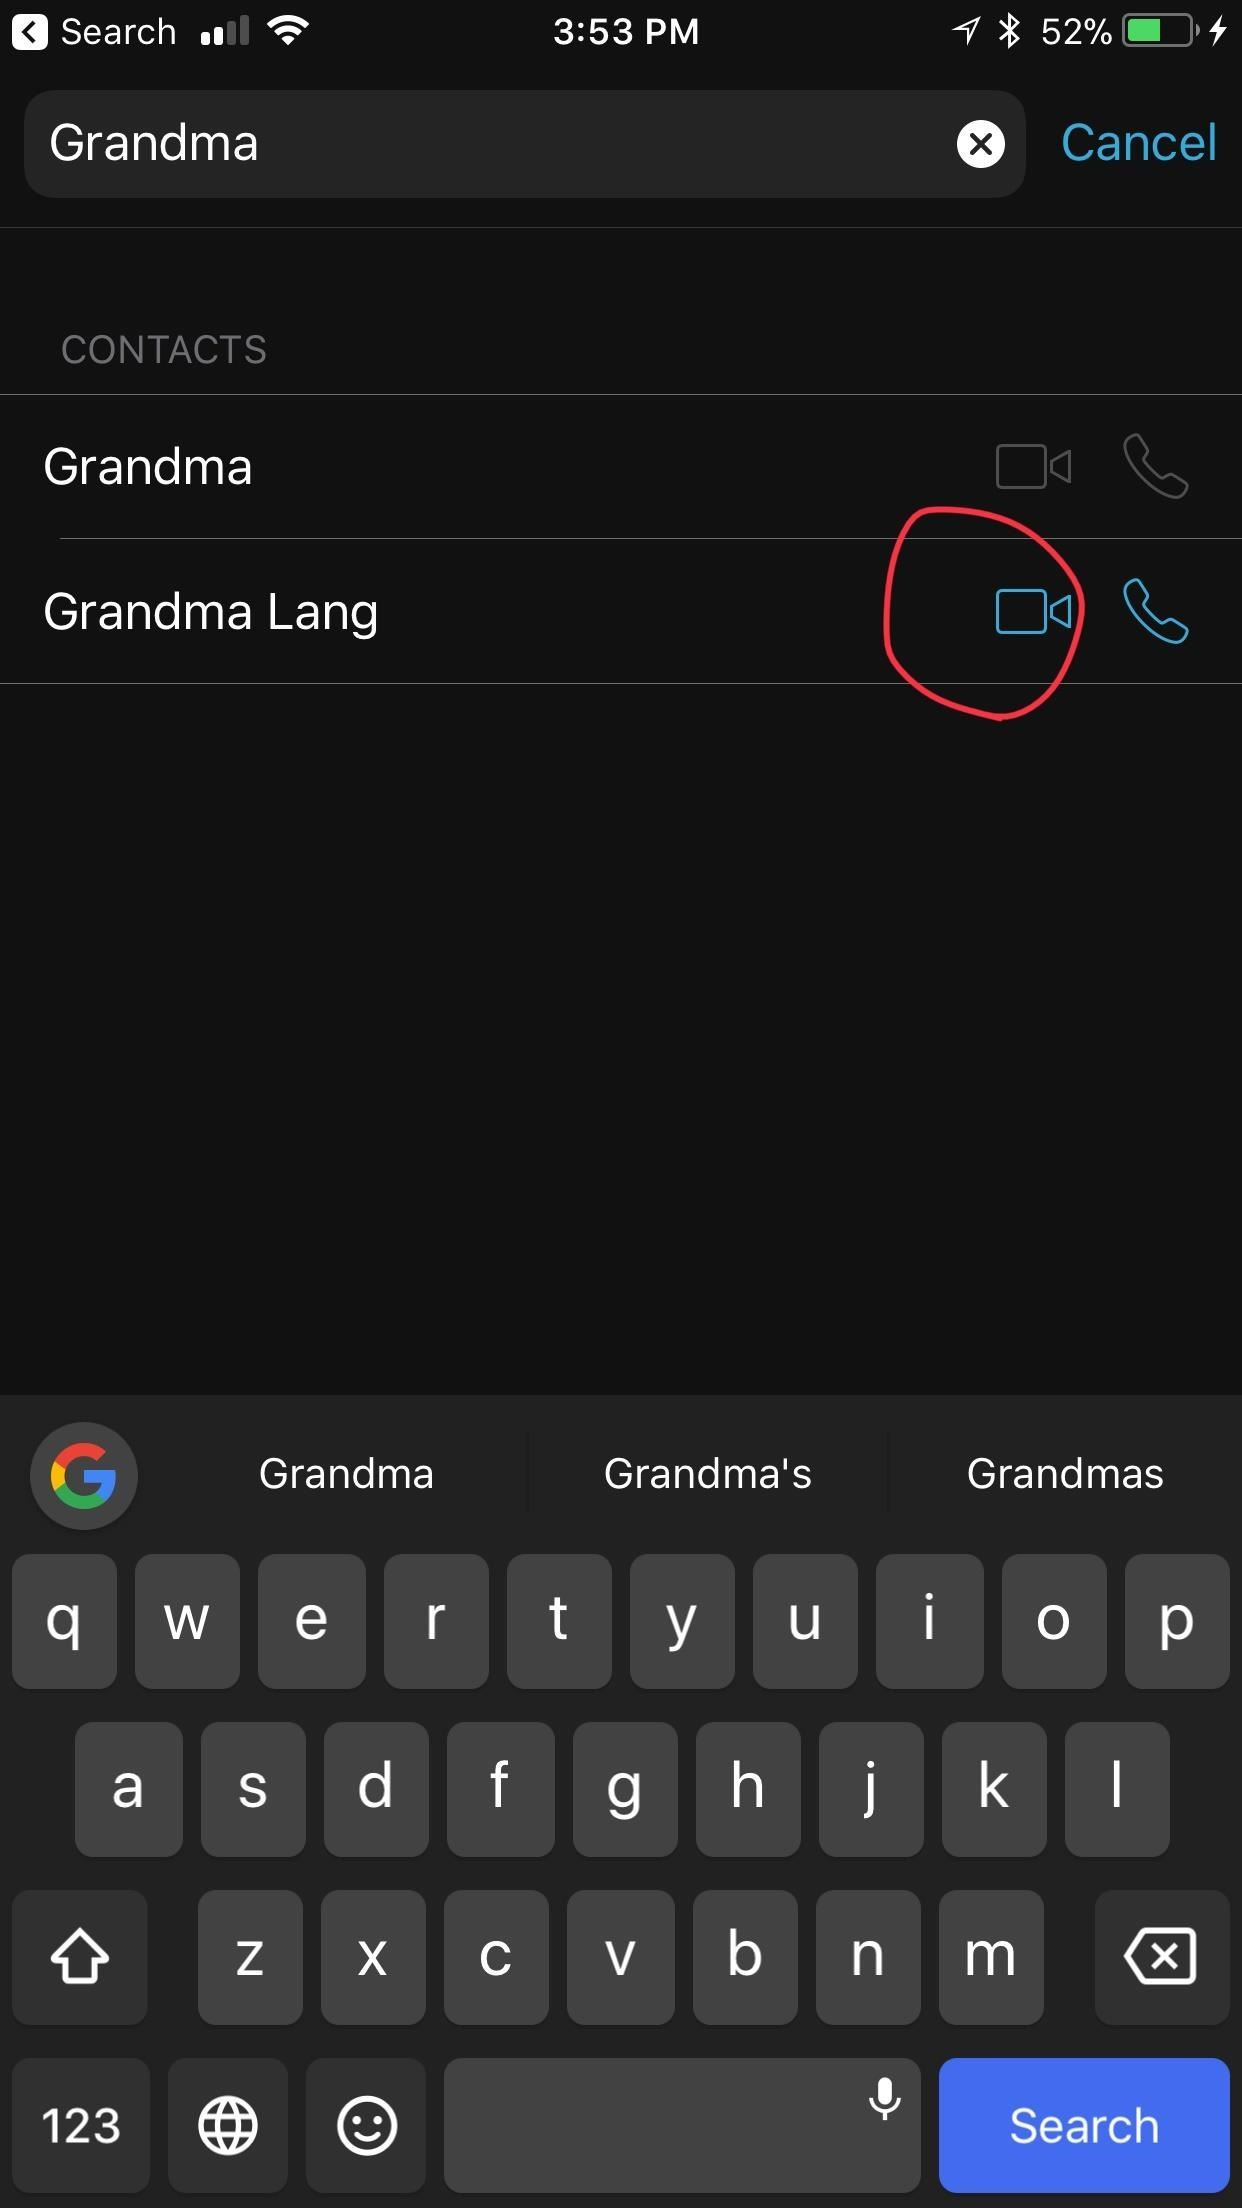 How to Set Up Grandma's First iPhone (A Guide for Newbie iOS Users)